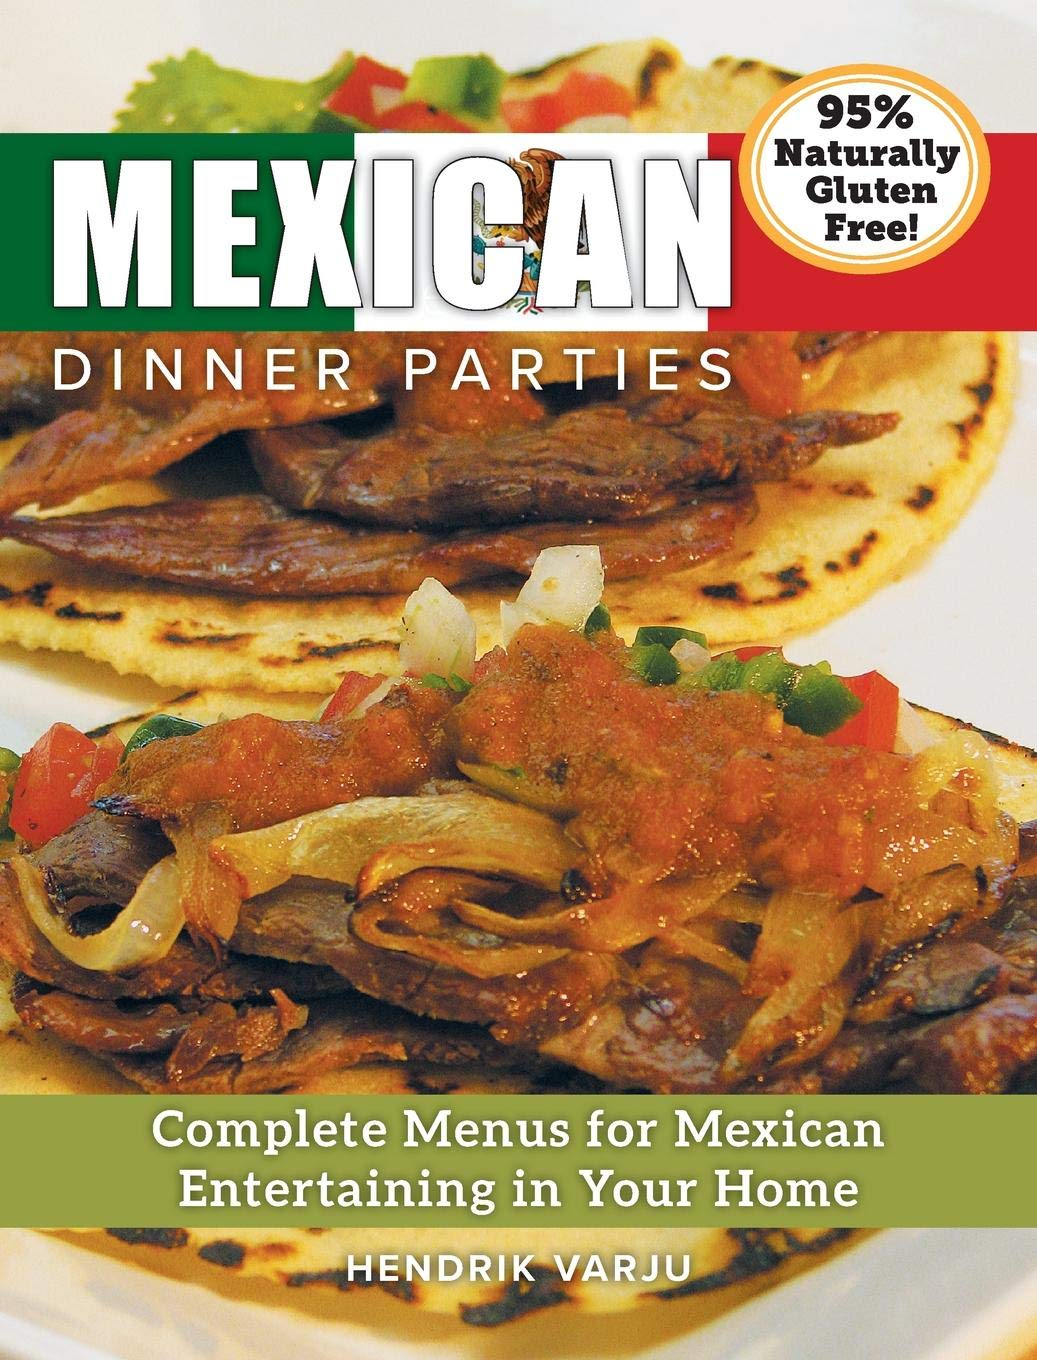 Mexican Dinner Parties: Complete Menus for Mexican Entertaining in Your Home: Hendrik Varju: 9781988901022: Amazon.com: Books